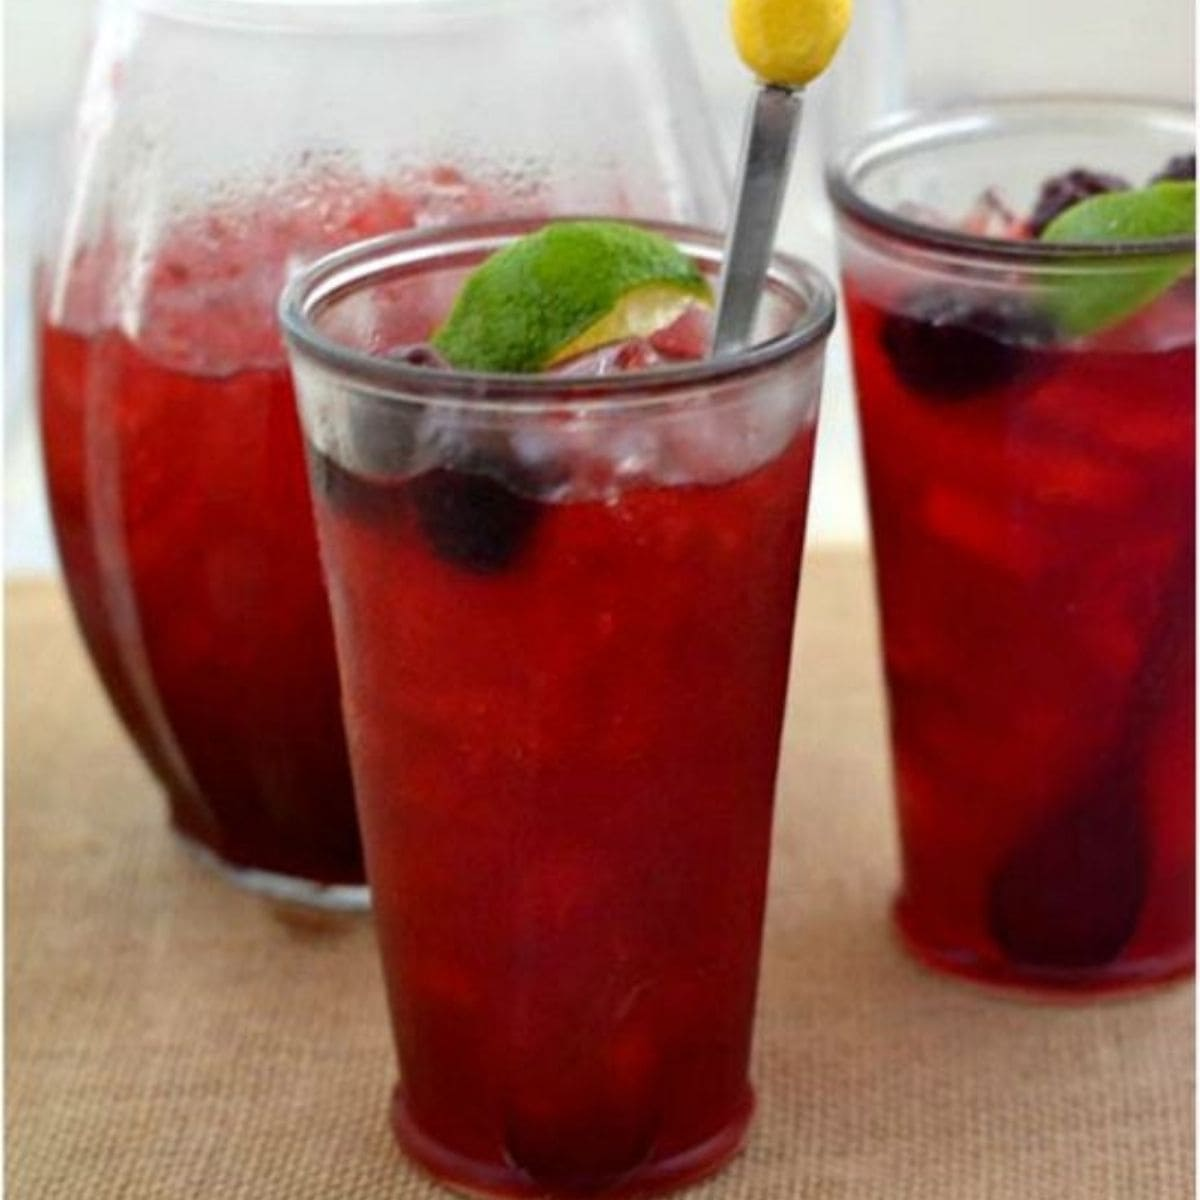 Two glasses and a pitcher filled with blackberry limeade.